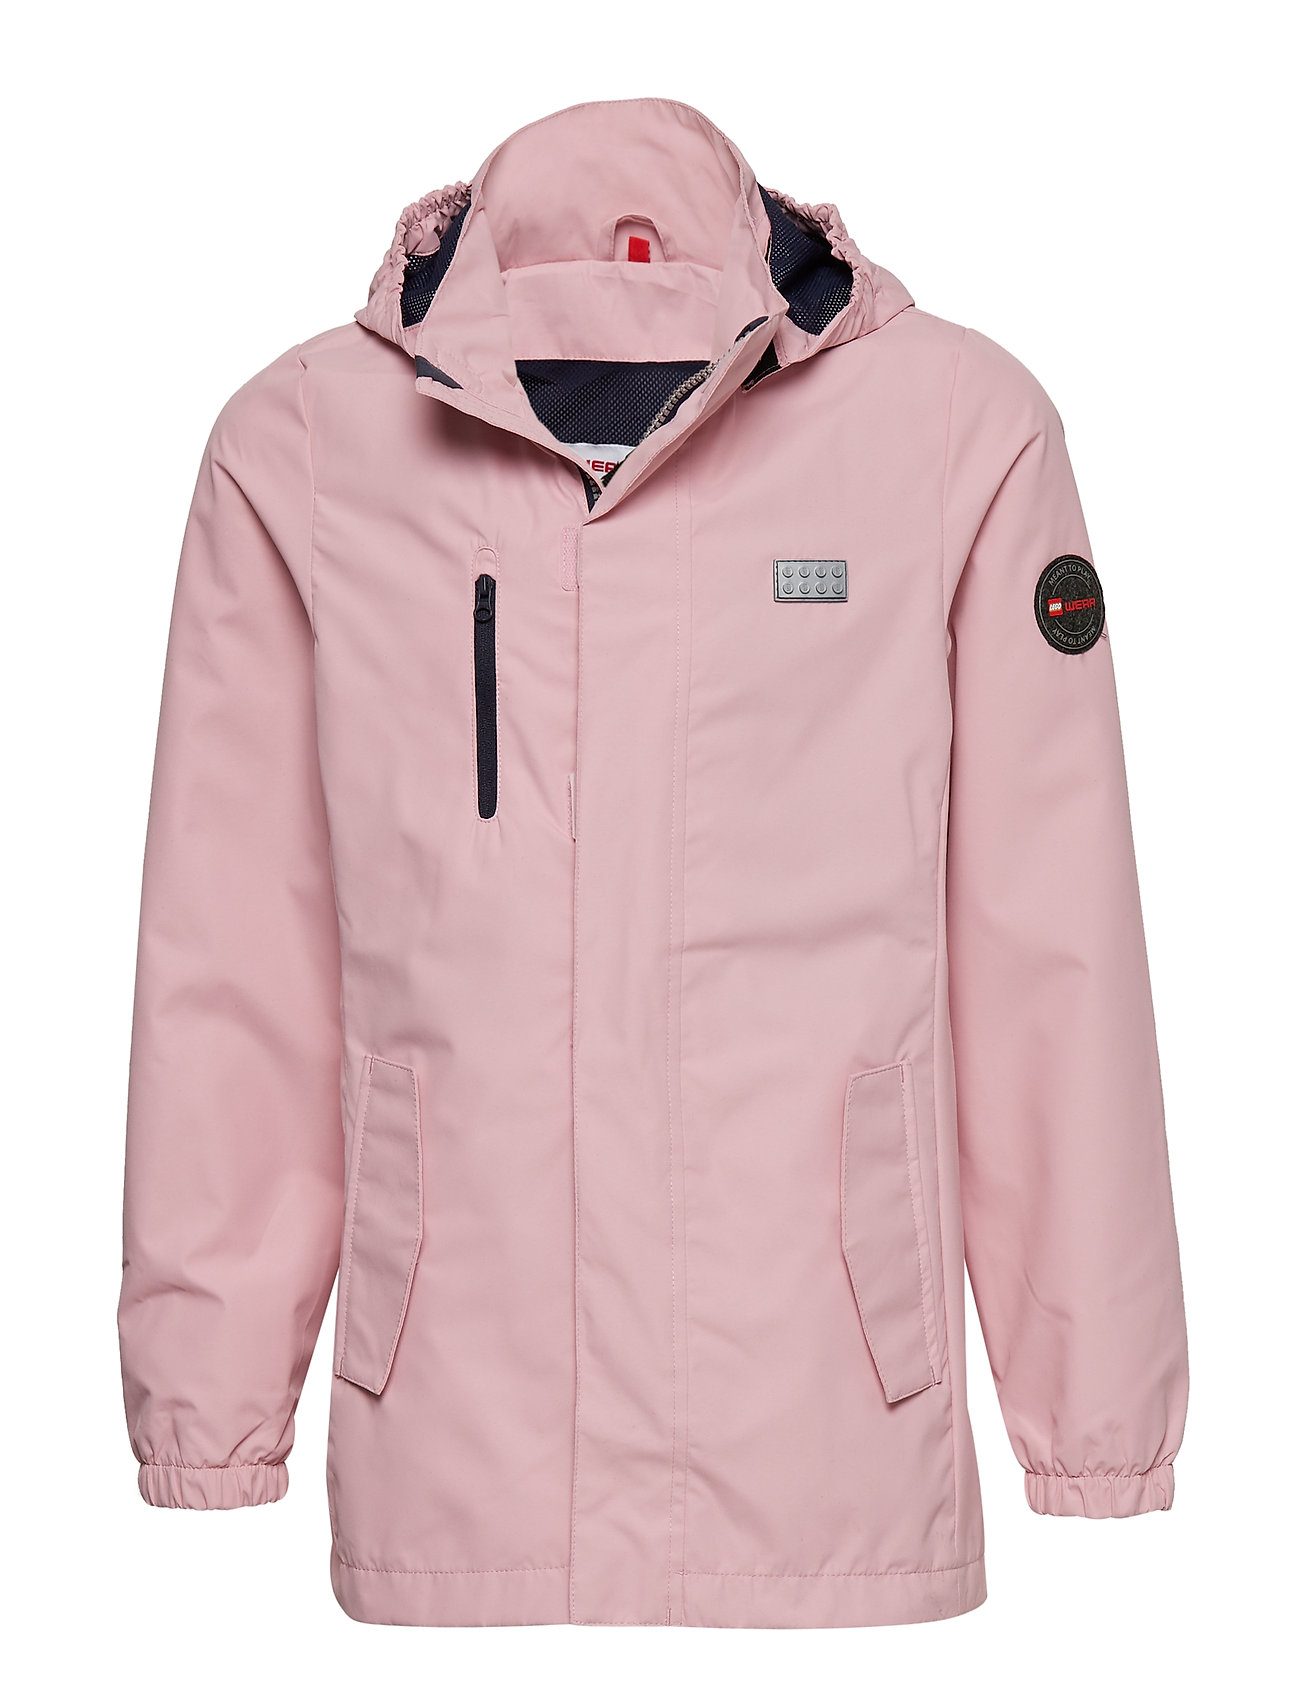 90b279e5c27b Josefine 201 - Jacket (Pink) (454.30 kr) - Lego wear -